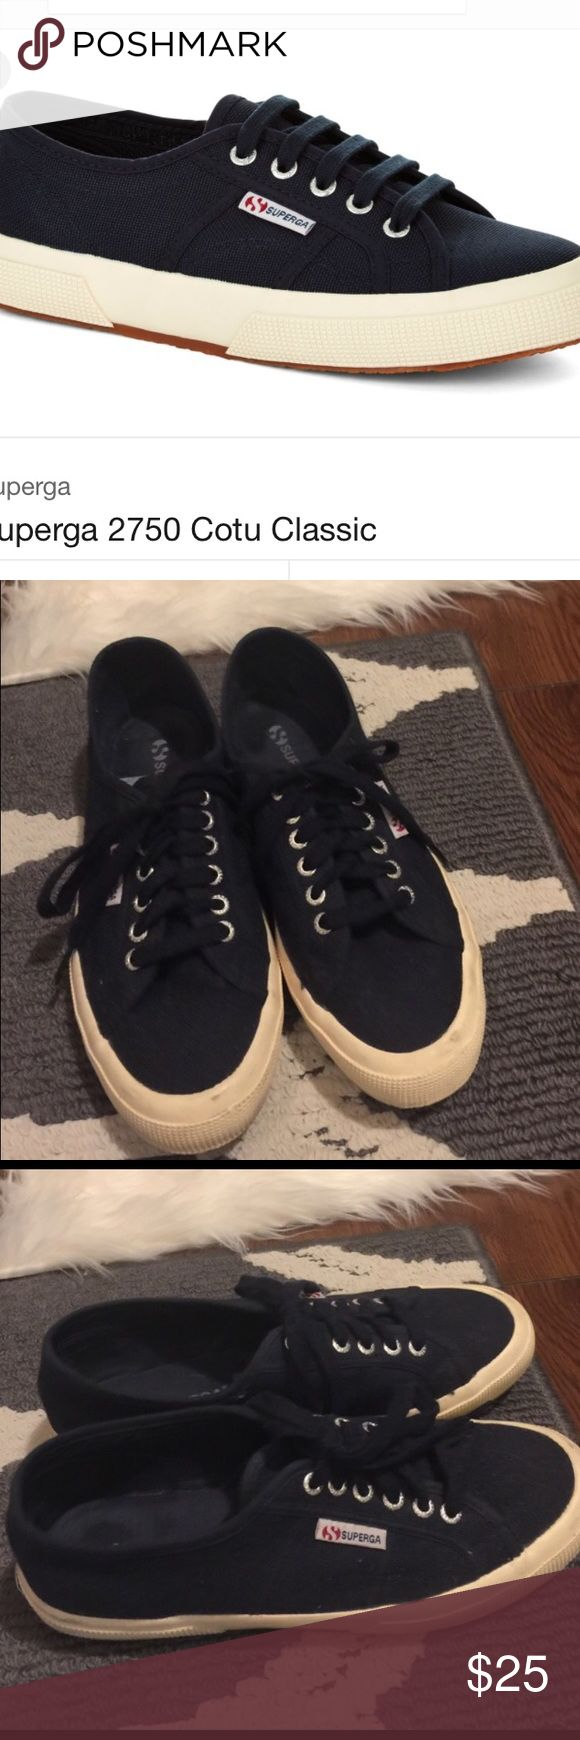 Navy Superga Sneakers Size 9.5 Minor scuff marks on rubber. Navy color with off white rubber. (Shoes purchased this way). Extremely comfy!!! Size 41 in EU Superga Shoes Sneakers